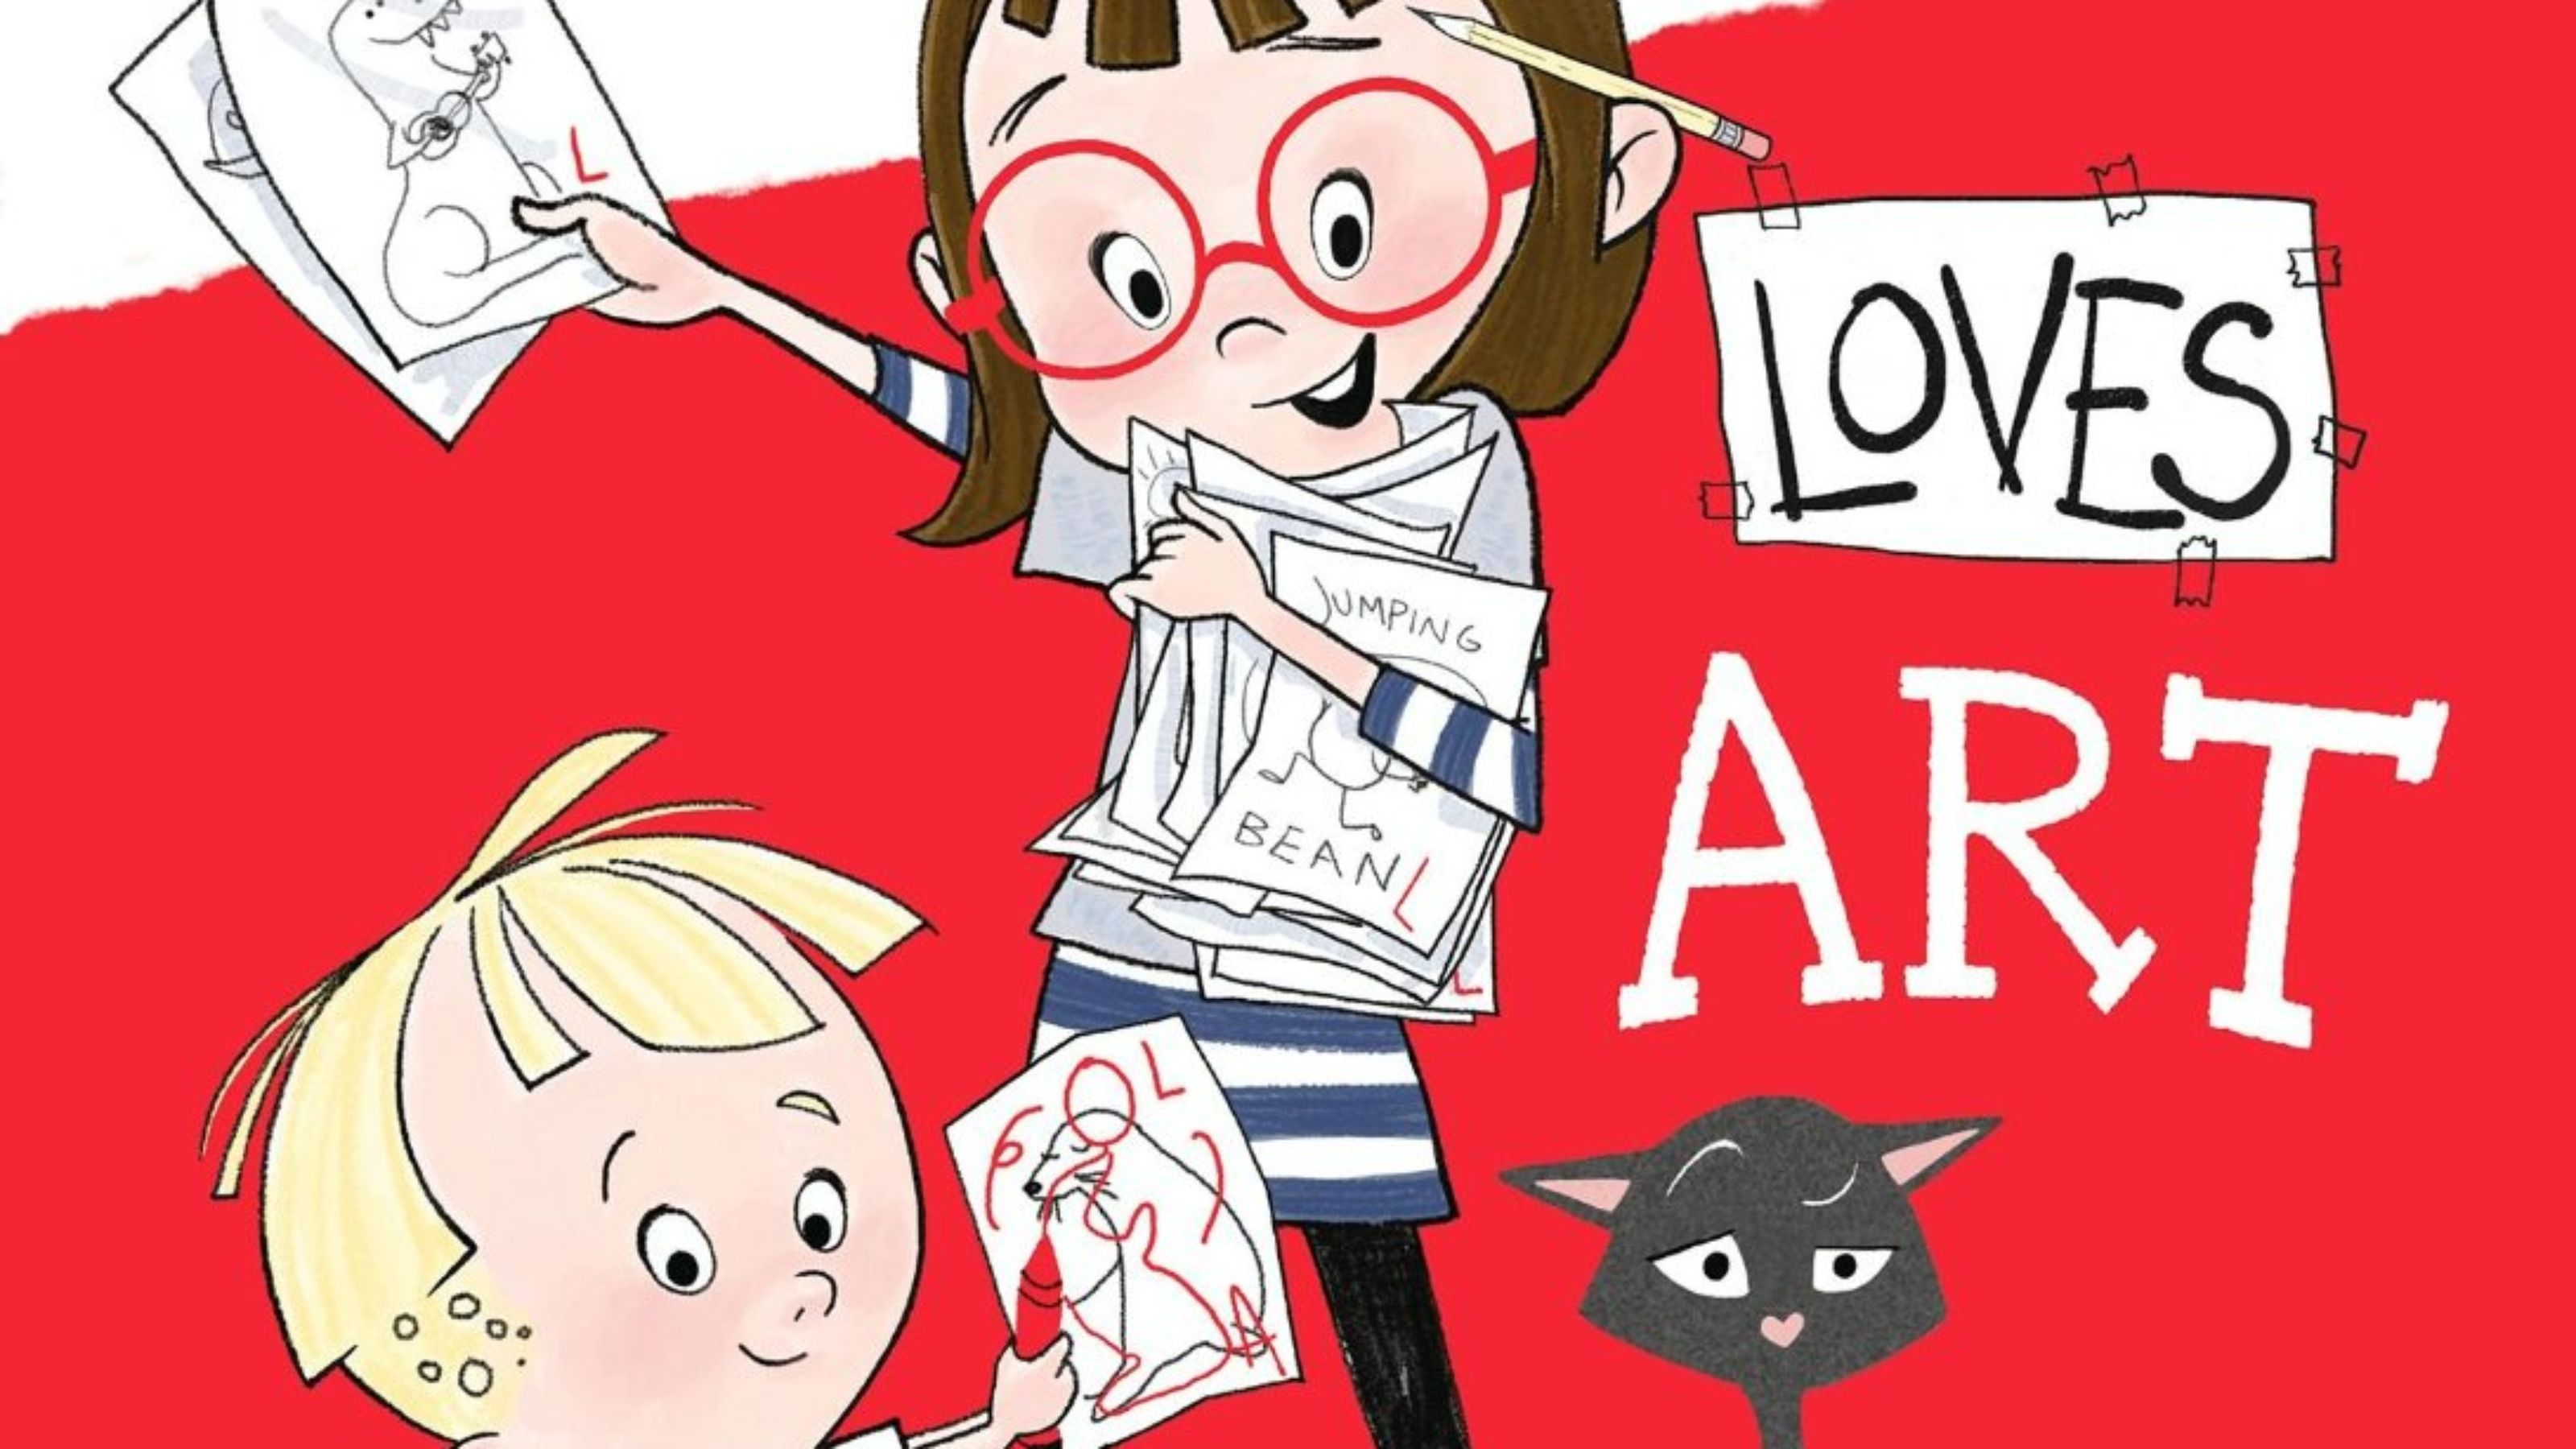 'Louise Loves Art': Preview Kelly LIght's cool kids' book